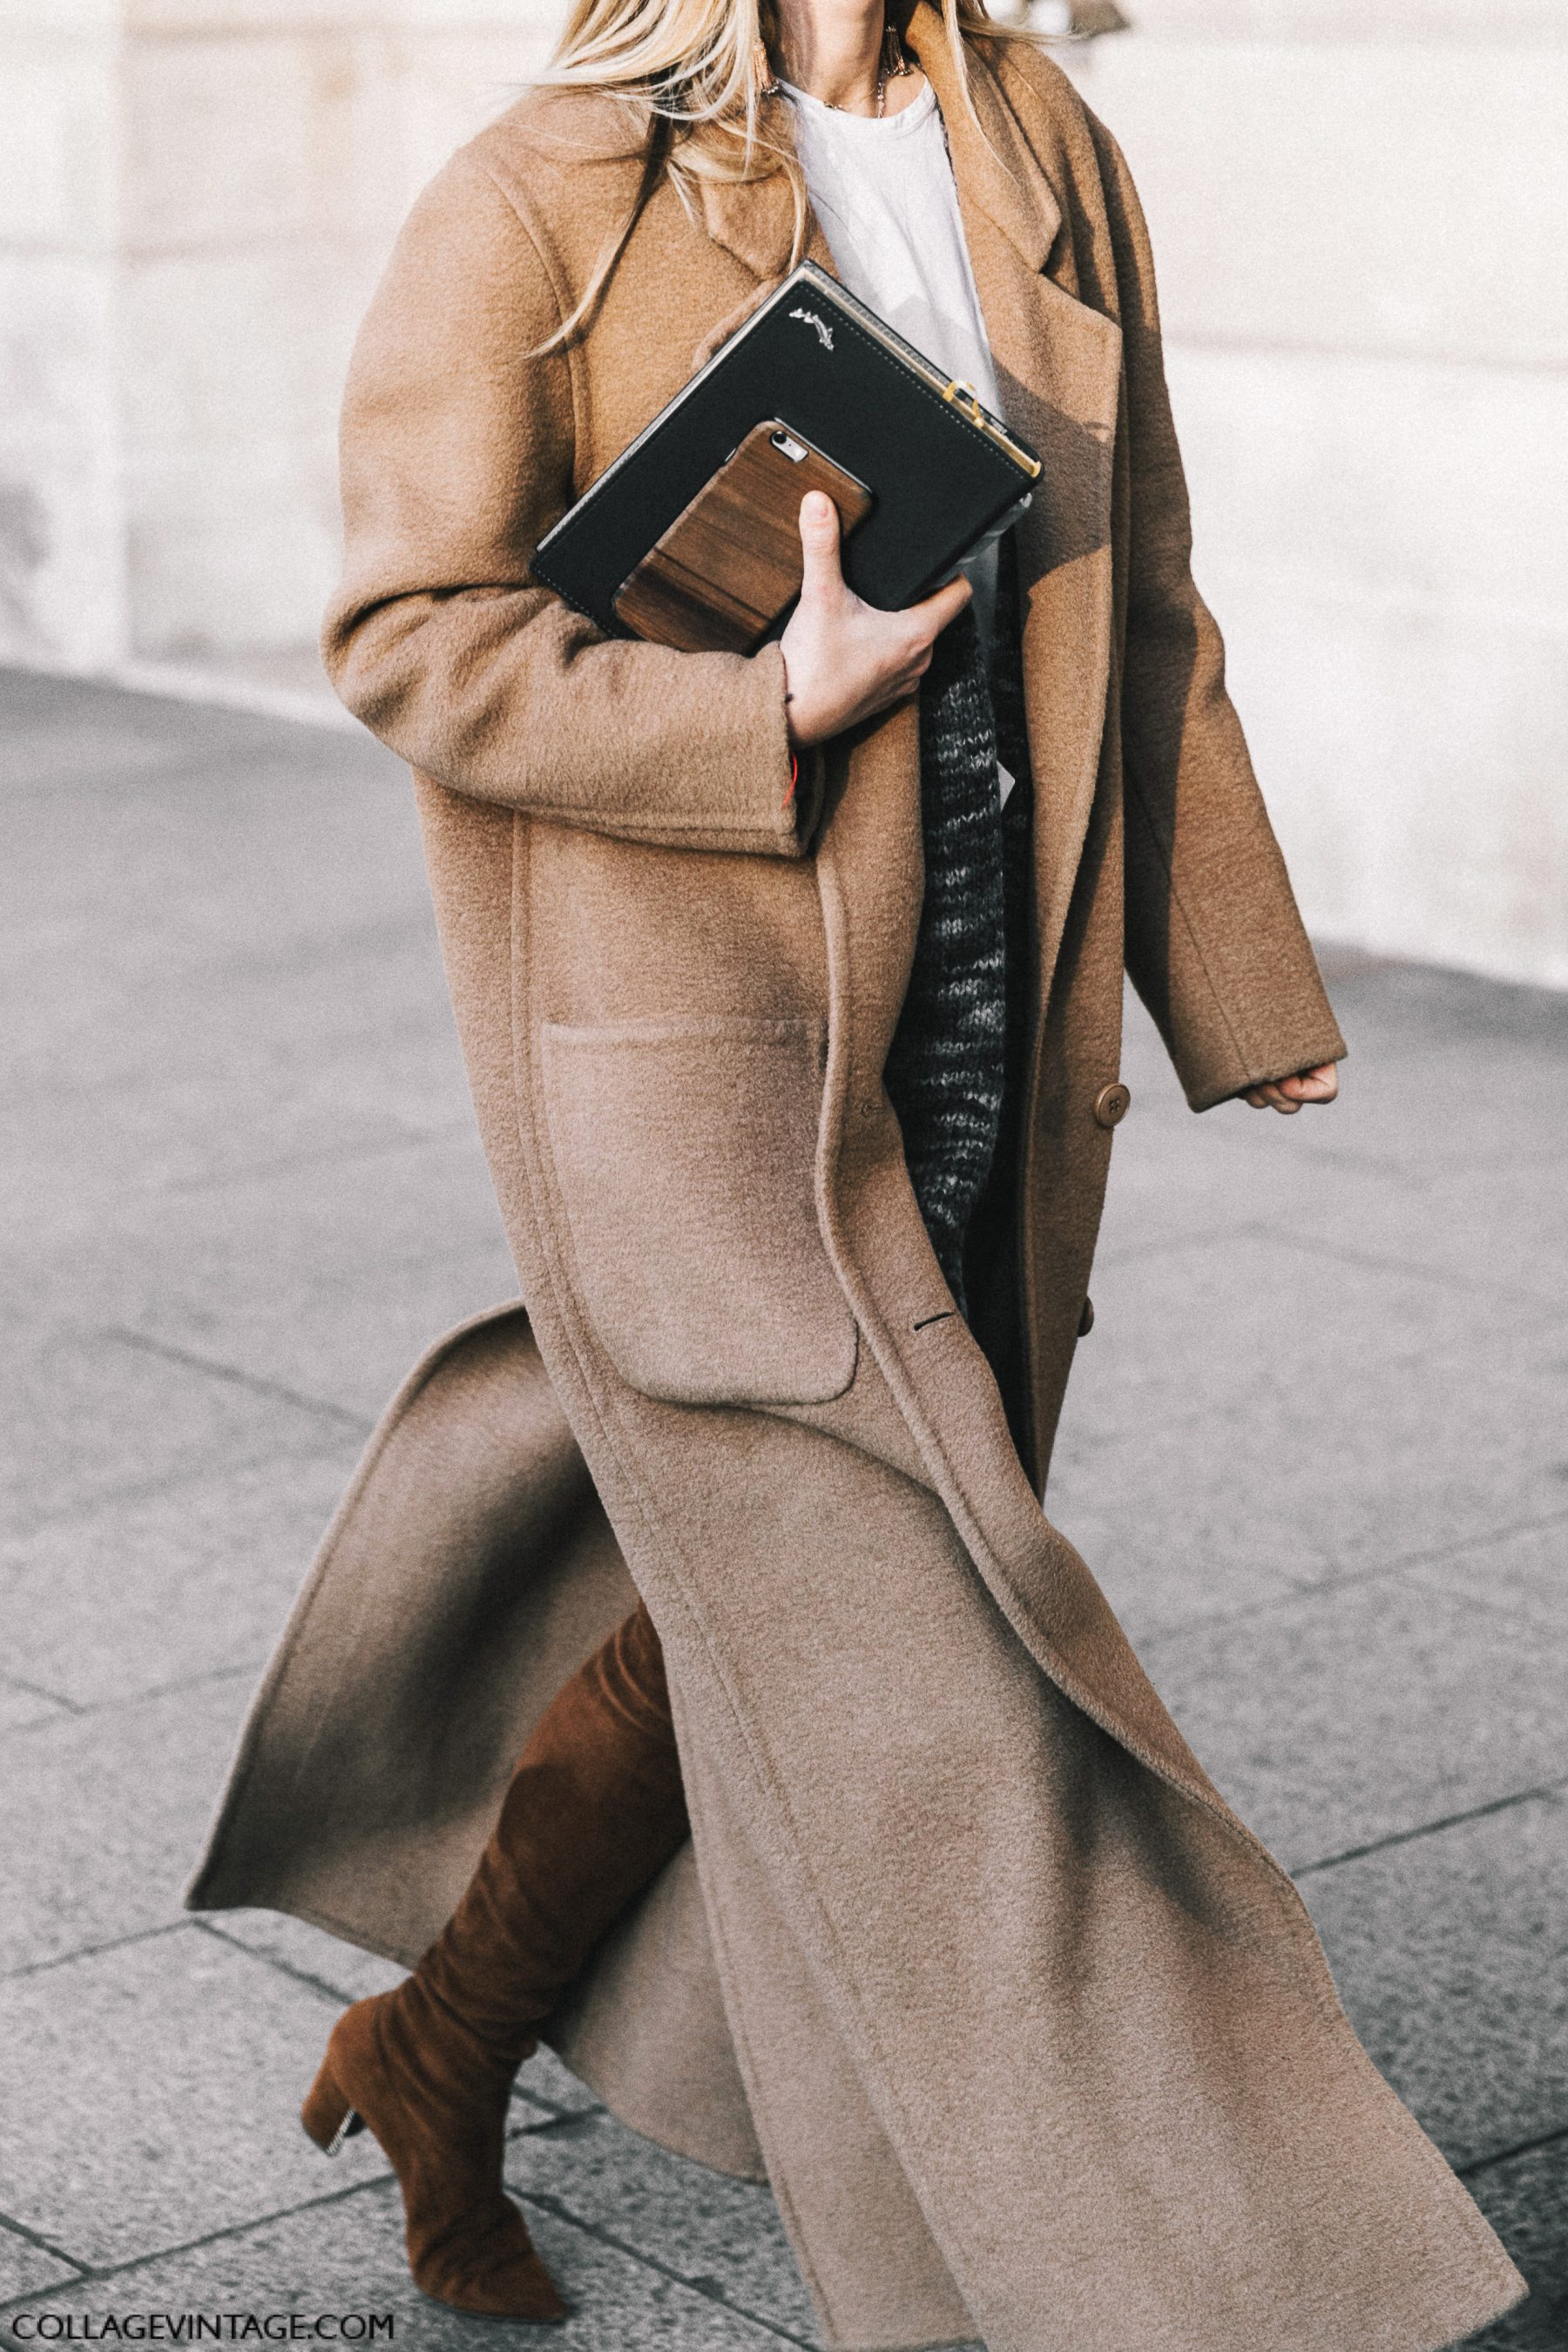 Couture Paris Fashion Week Pfw Street Style Dior Outfit Collage Vintage 19 1 1800 2700 Street